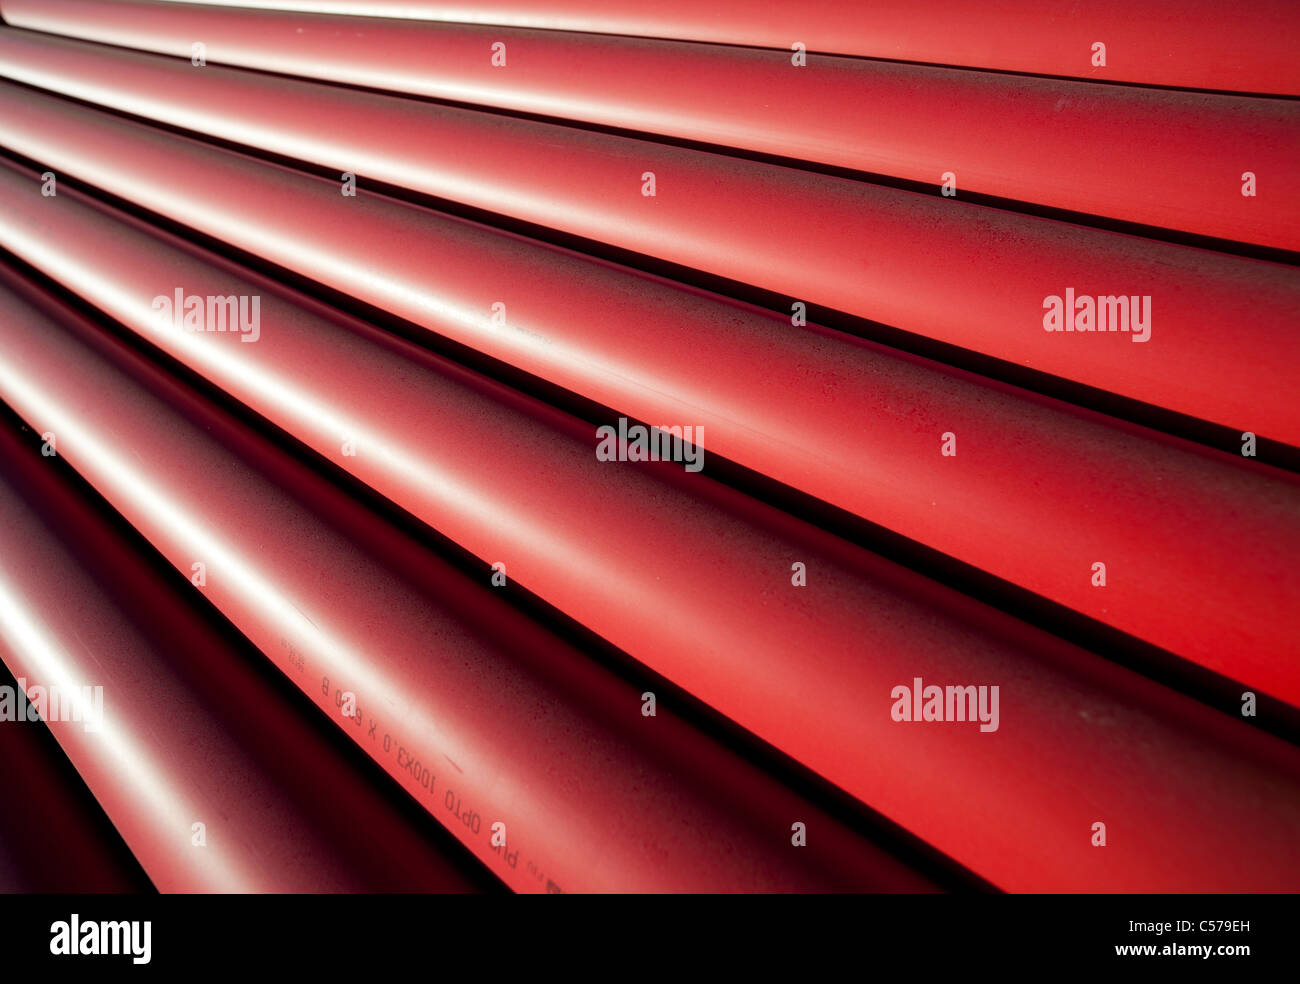 PVC drainage / sewer pipes Stock Photo